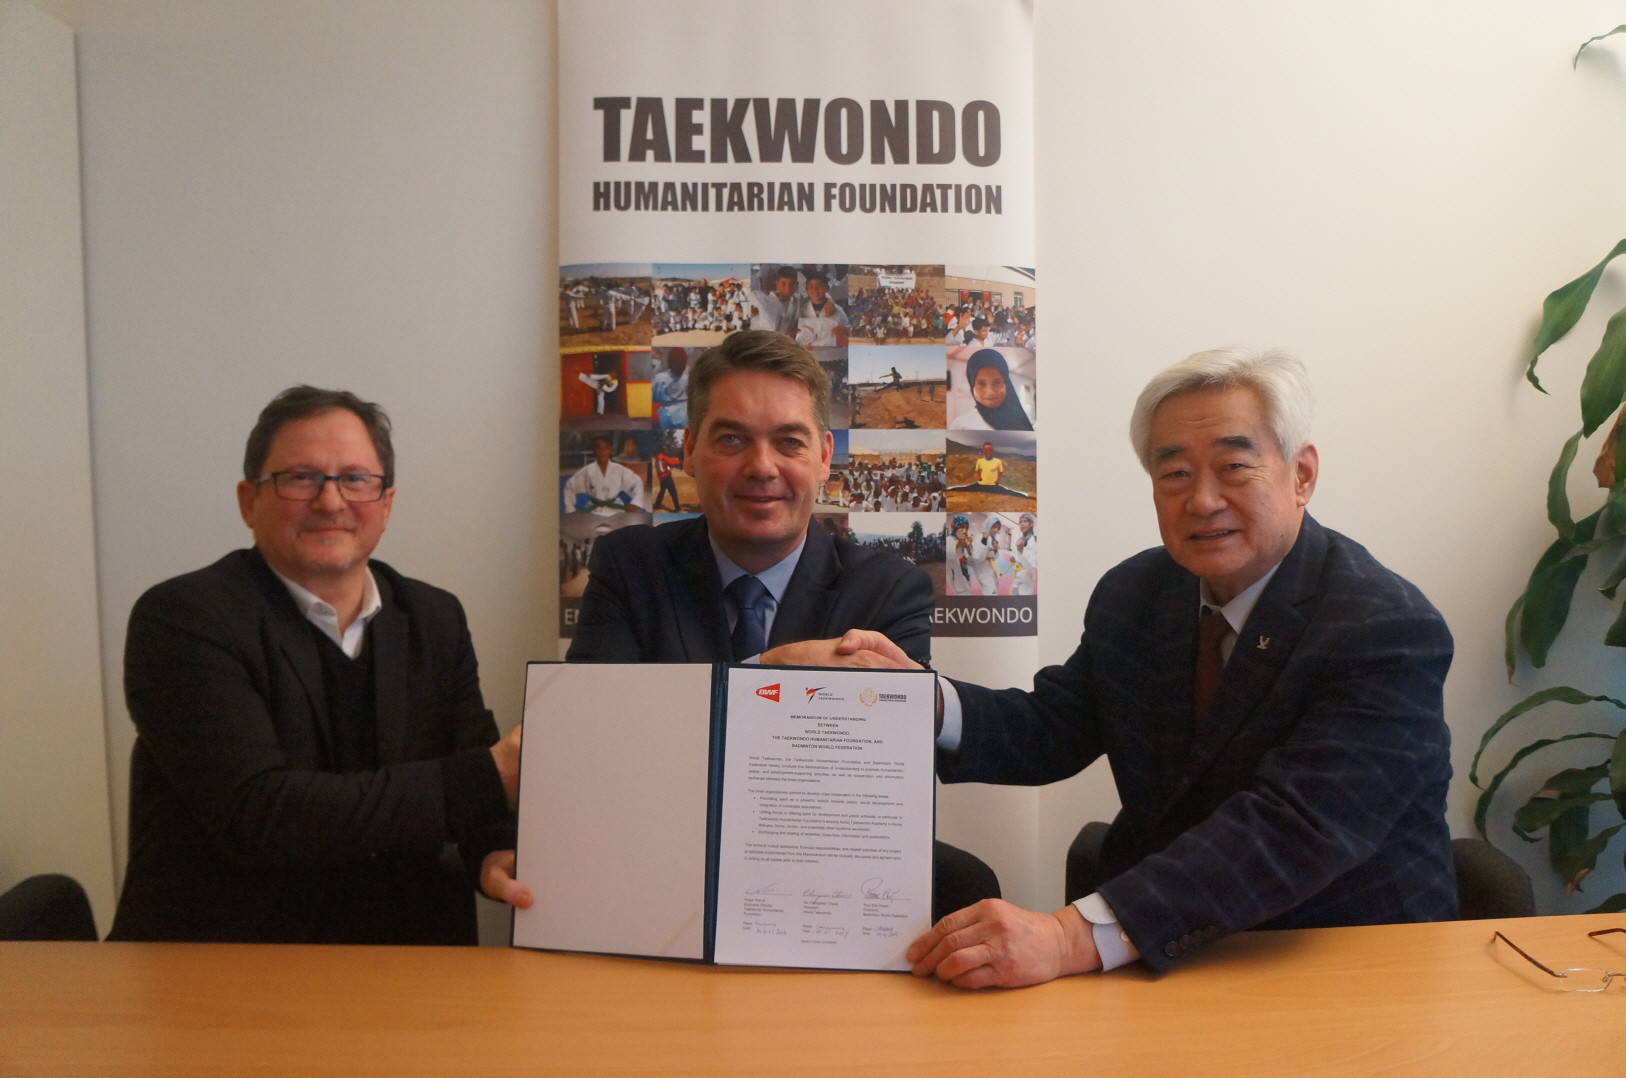 Badminton World Federation sign MoU with Taekwondo Humanitarian Foundation to help refugees in Jordan